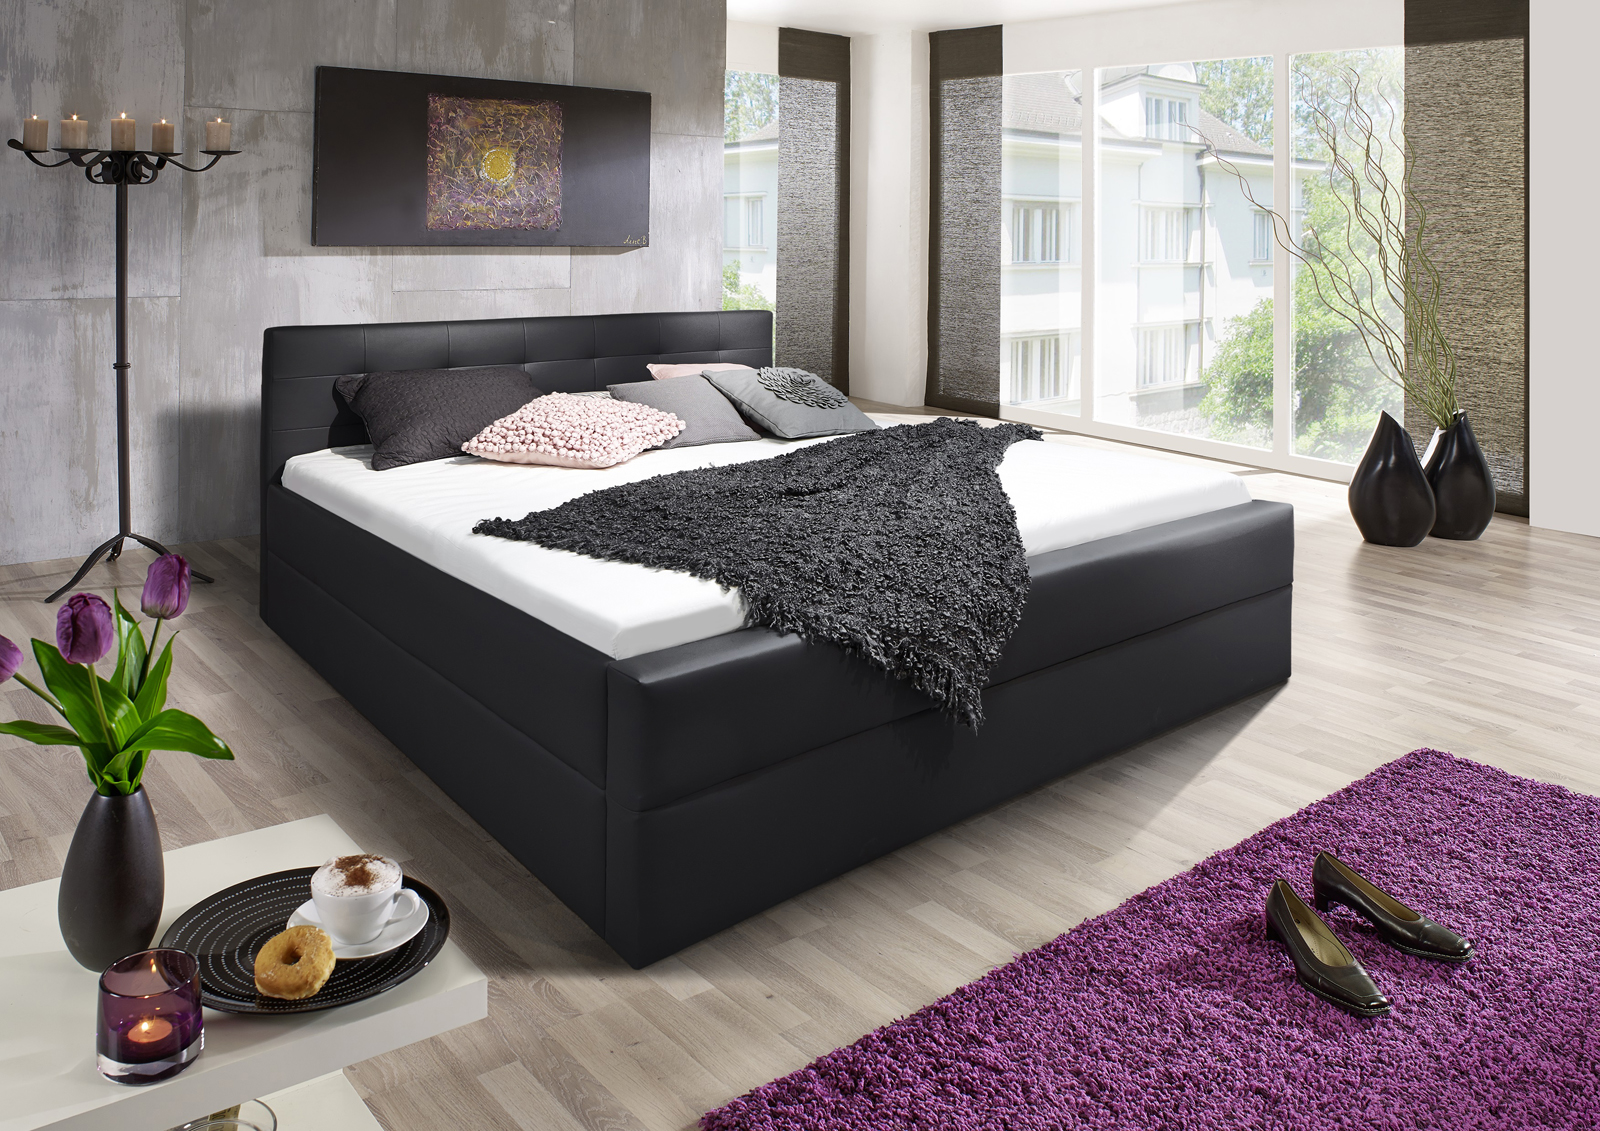 sam design boxspringbett 180 x 200 cm schwarz kappa auf lager. Black Bedroom Furniture Sets. Home Design Ideas